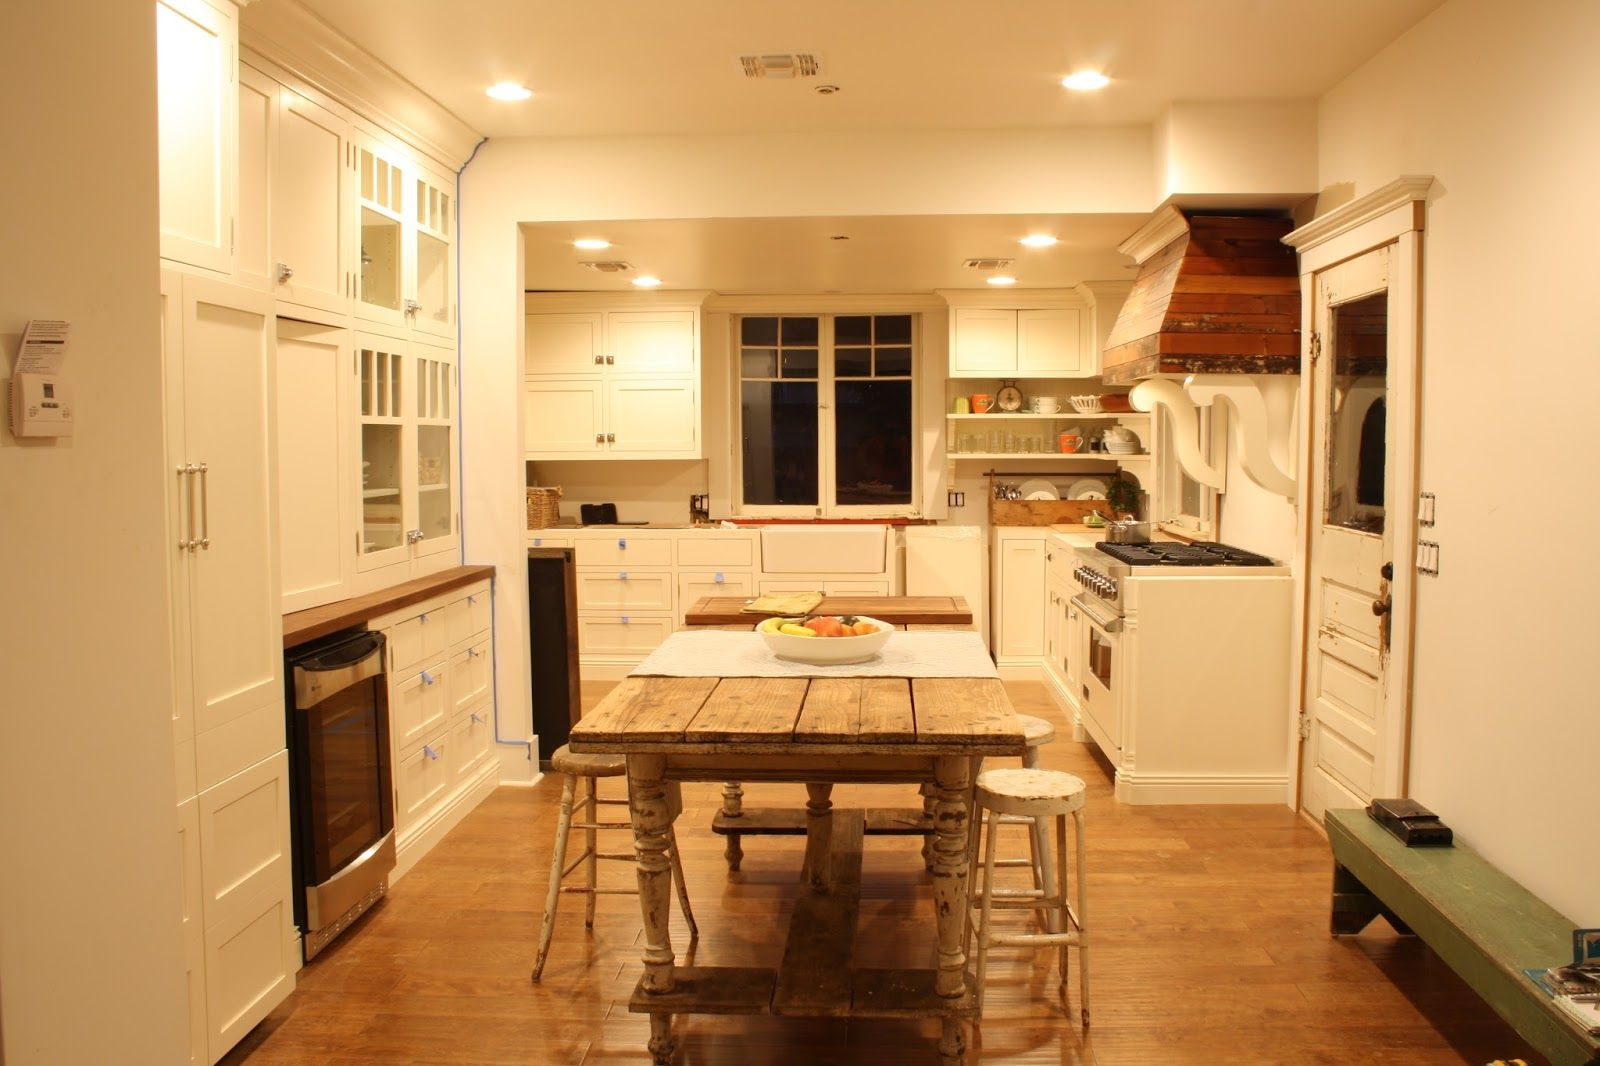 TUESDAYS WITH DORIE Cottage kitchens, Sherwin williams